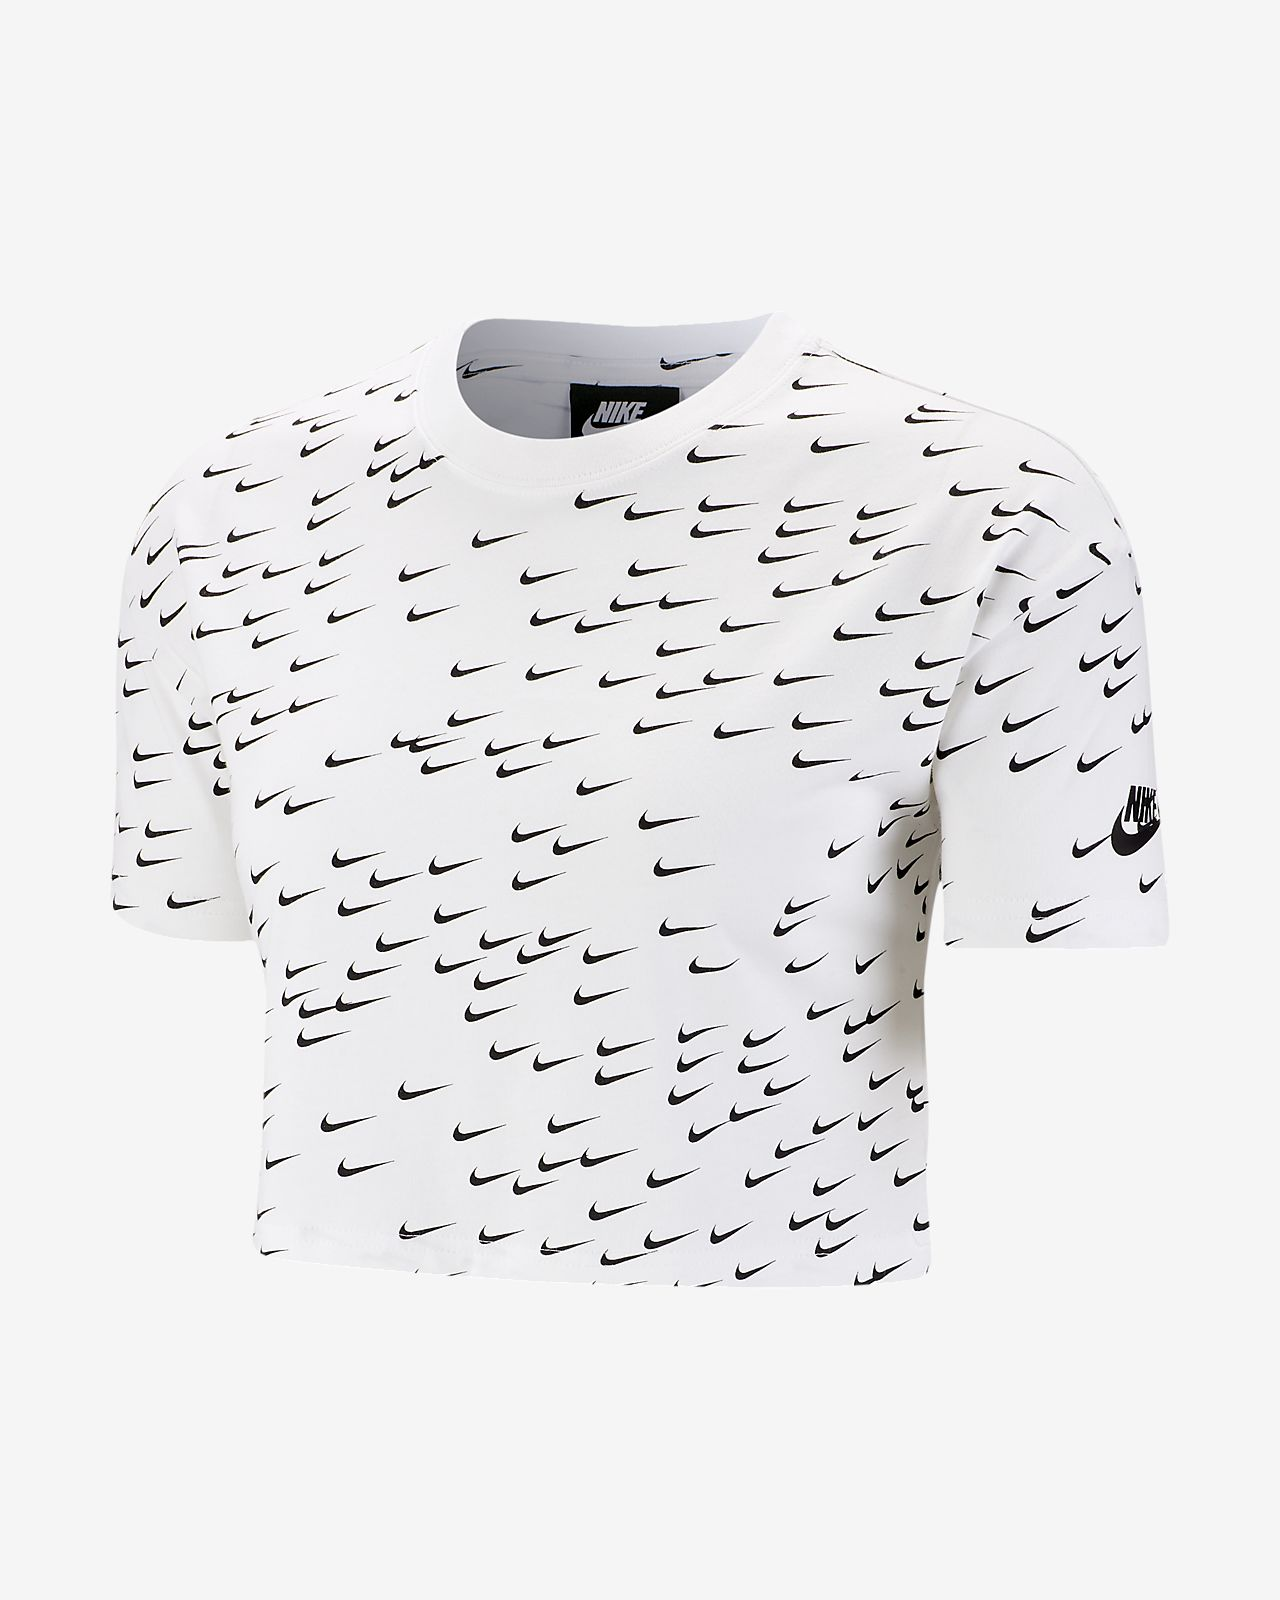 40399e9ebdb0a7 Nike Sportswear Essential Women s Short-Sleeve Crop Top. Nike.com